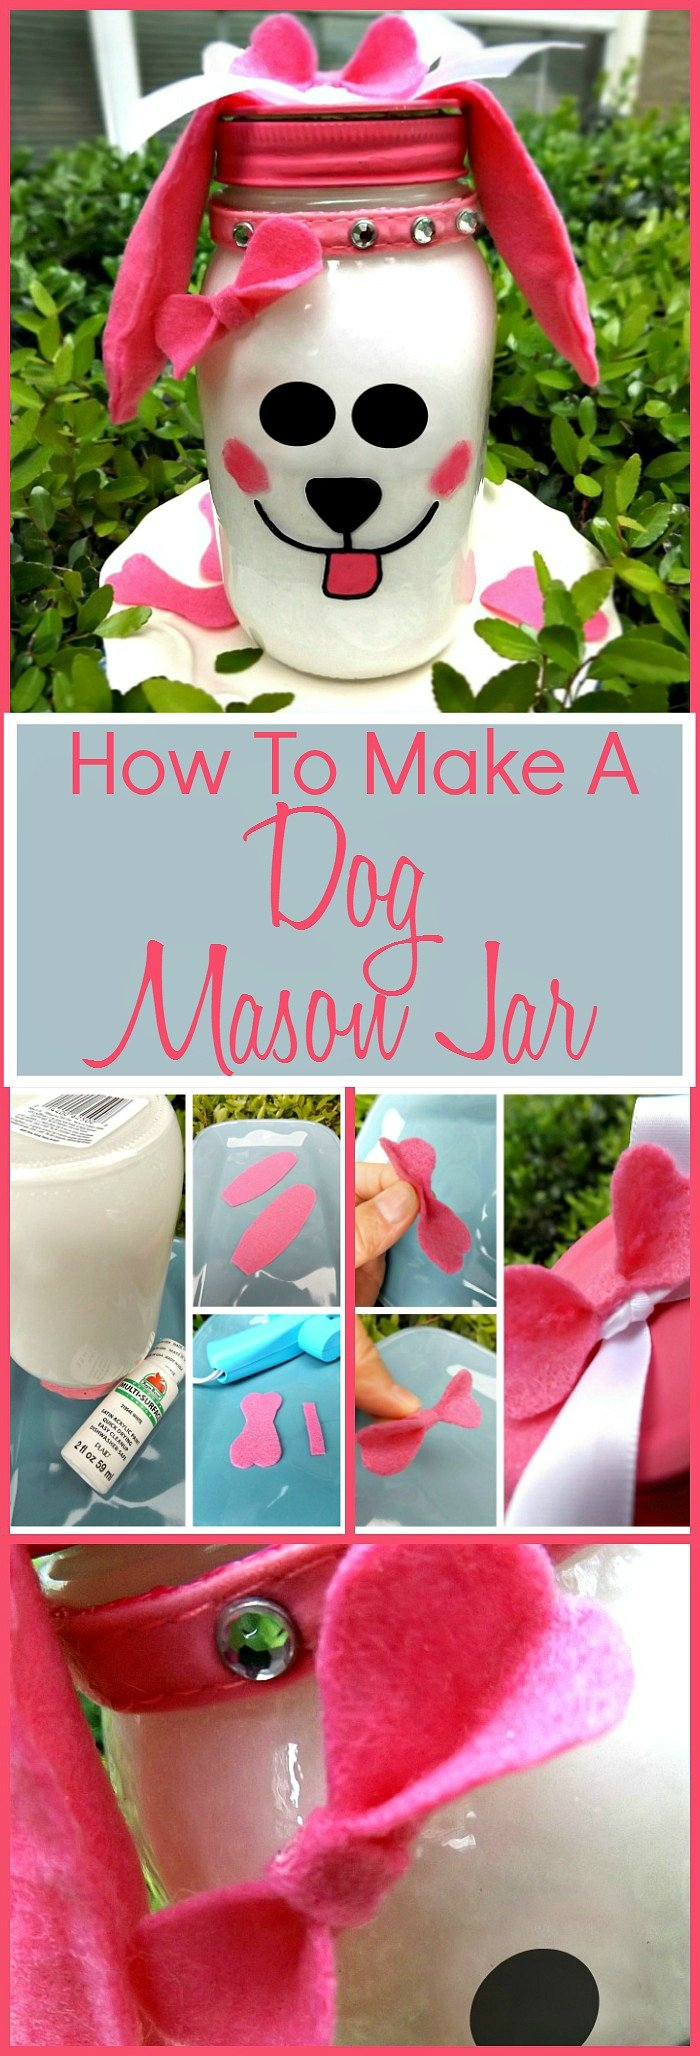 How To Make A Puppy Dog Mason Jar Craft.